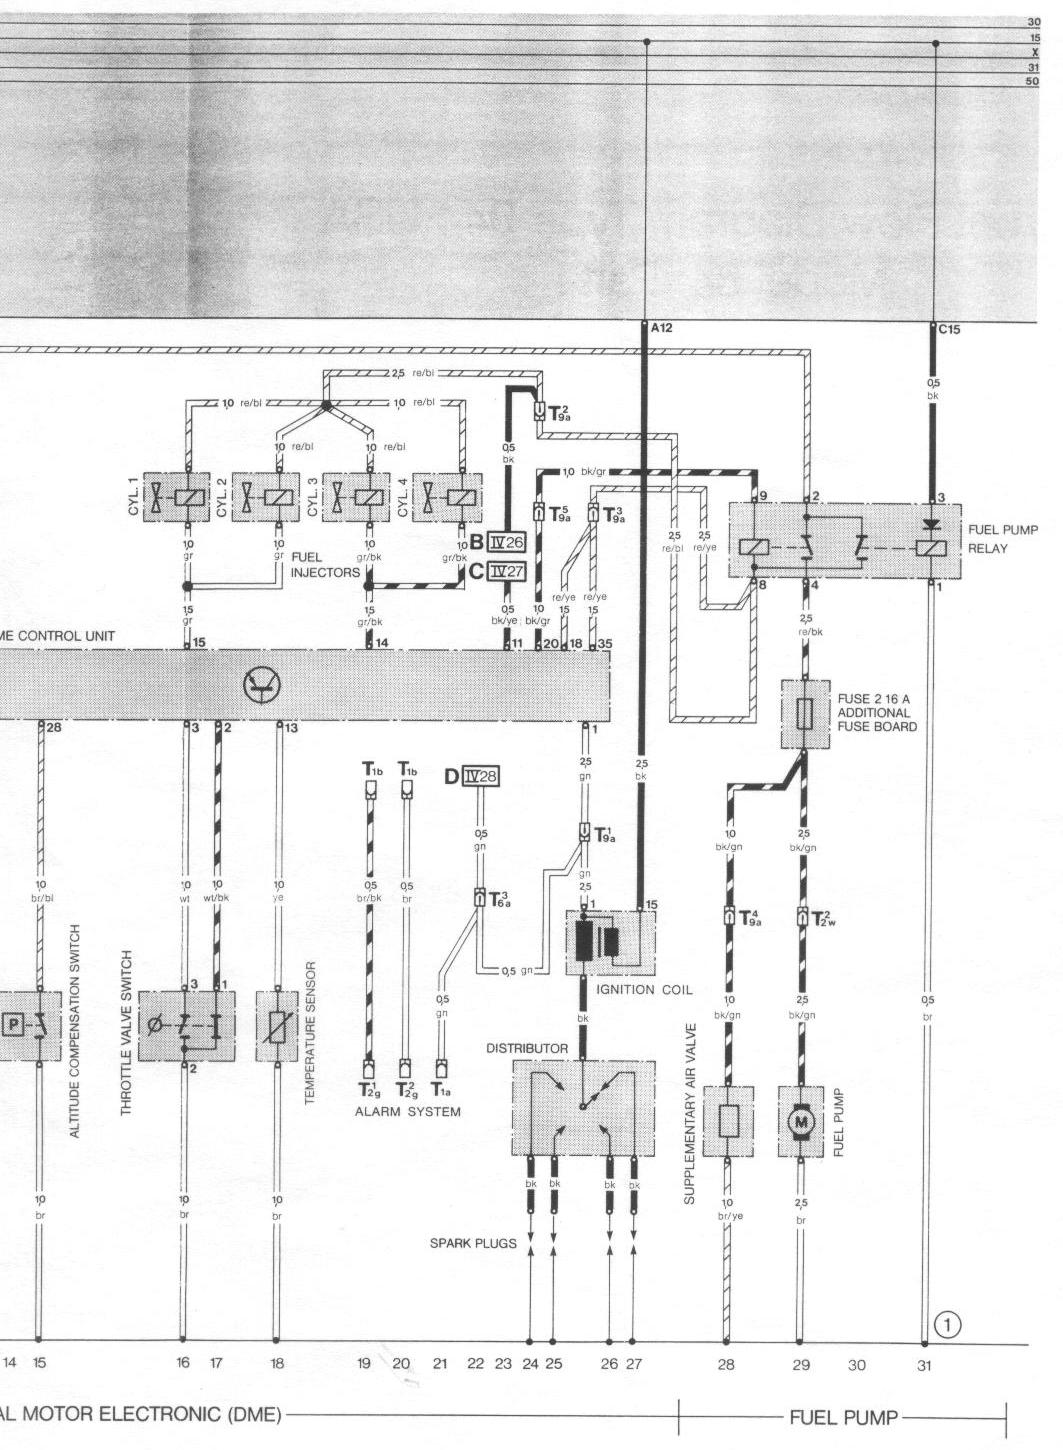 944_84_1_2 pelican parts porsche 924 944 electrical diagrams 1984 porsche 944 fuse box diagram at webbmarketing.co